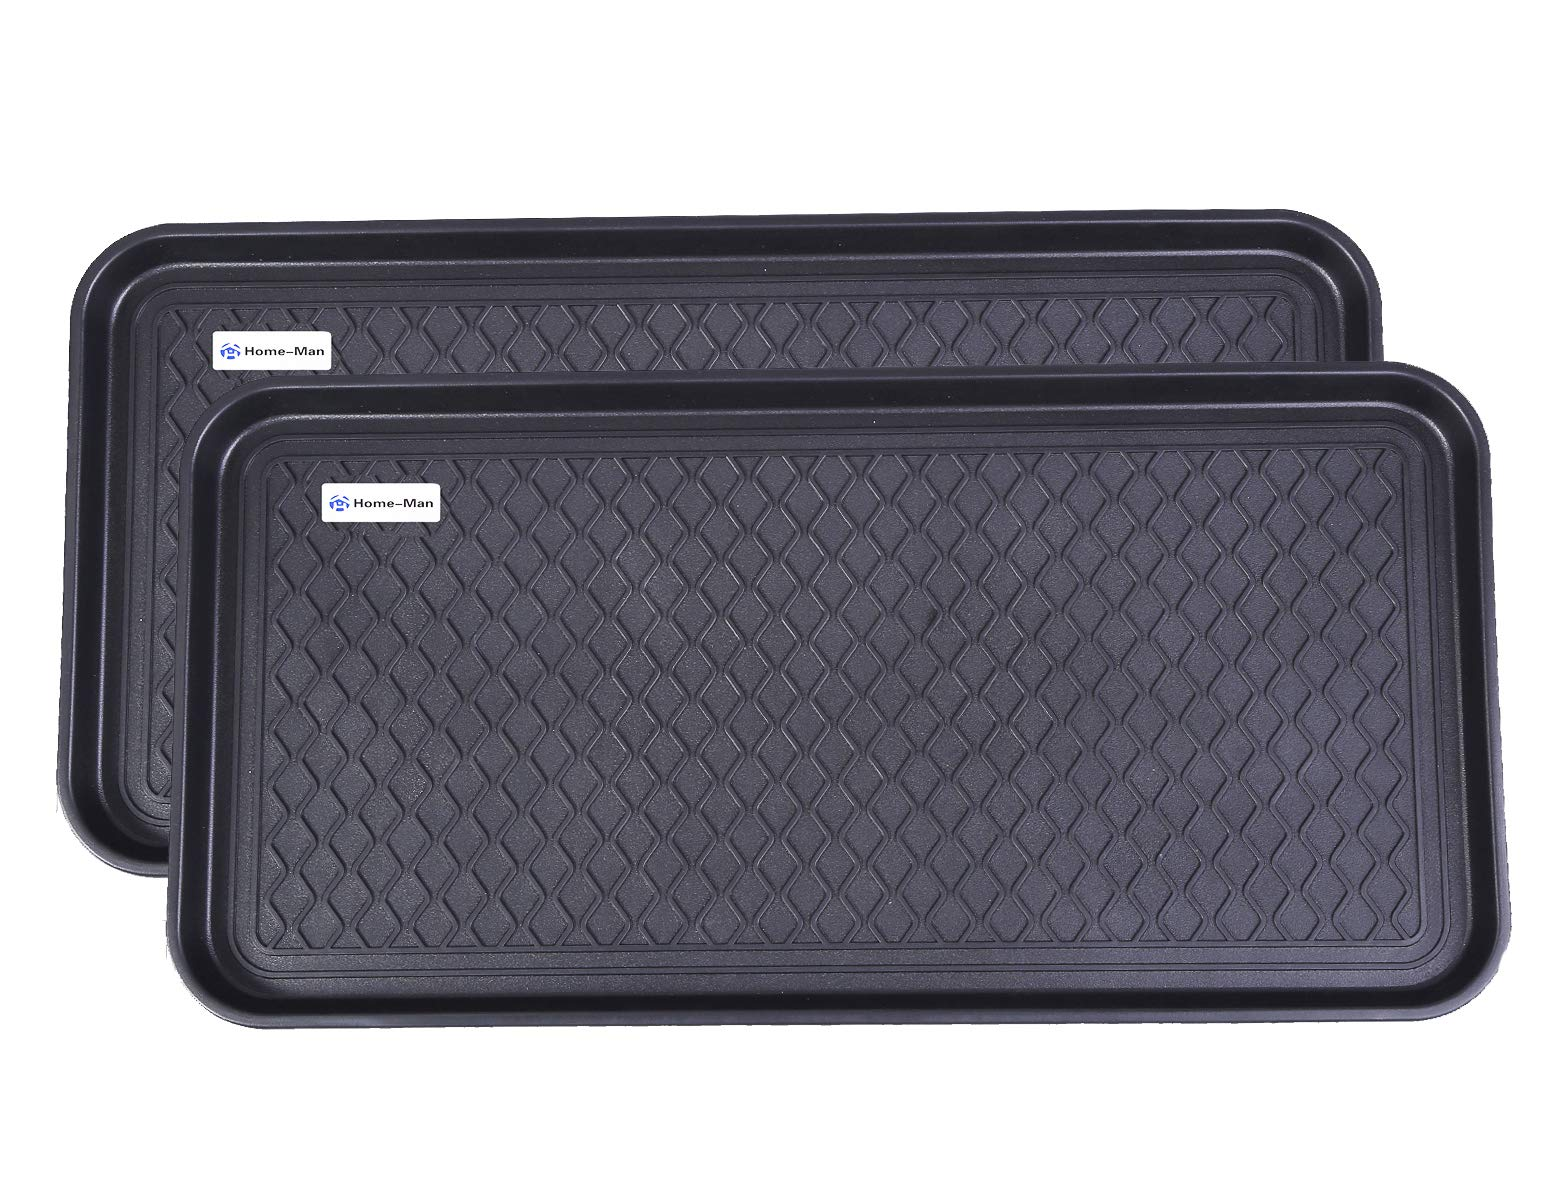 Home-Man Multi-Purpose Boot Tray Mat,Shoe Tray Mat,Dog Feeding Tray,Waterproof Trays for Indoor and Outdoor Floor Protection,30'' x 15''/2 Pack by Home-Man